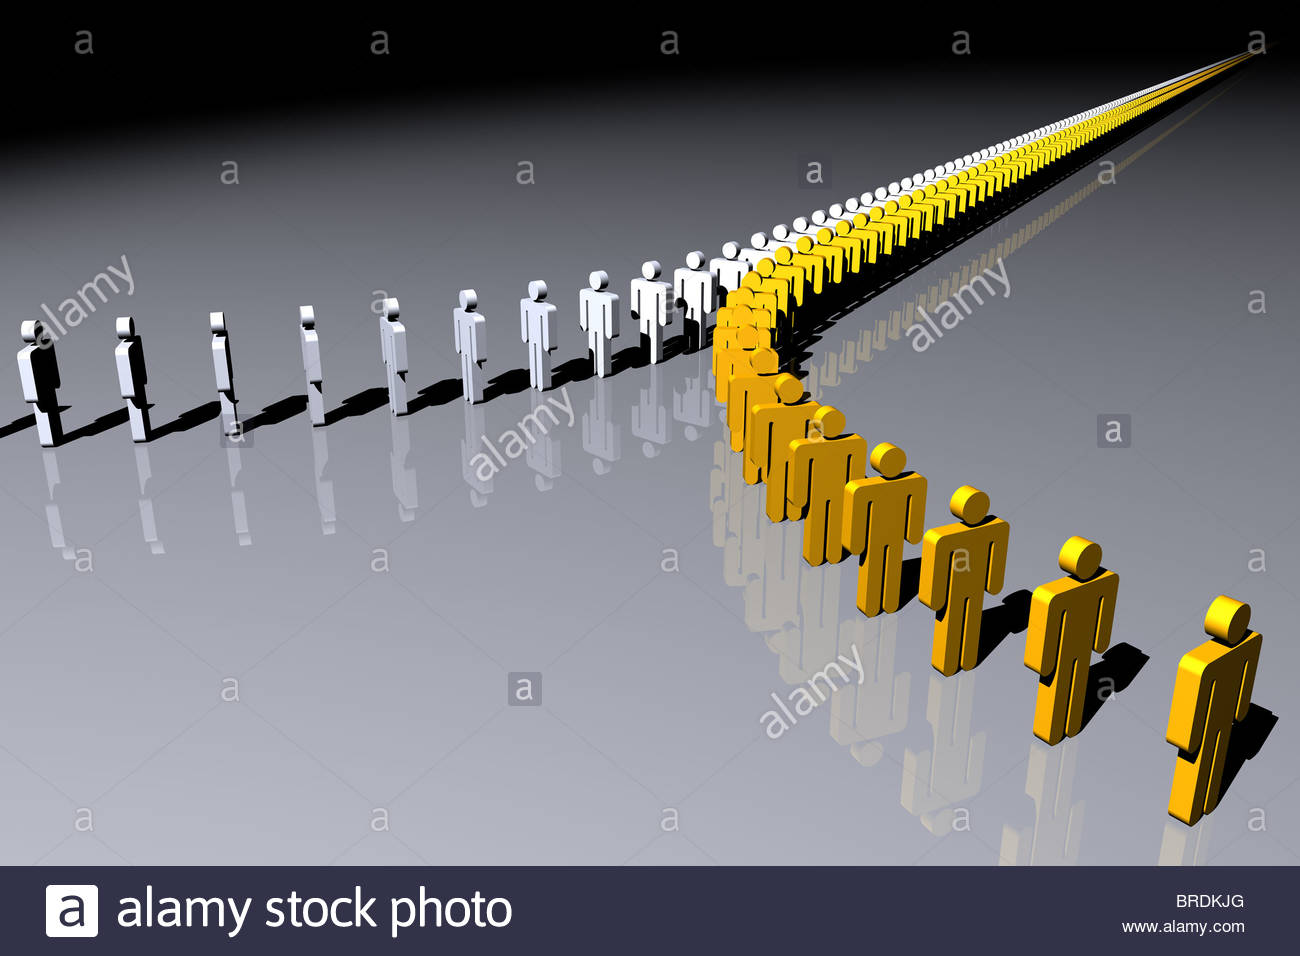 Meeting - Stock Image